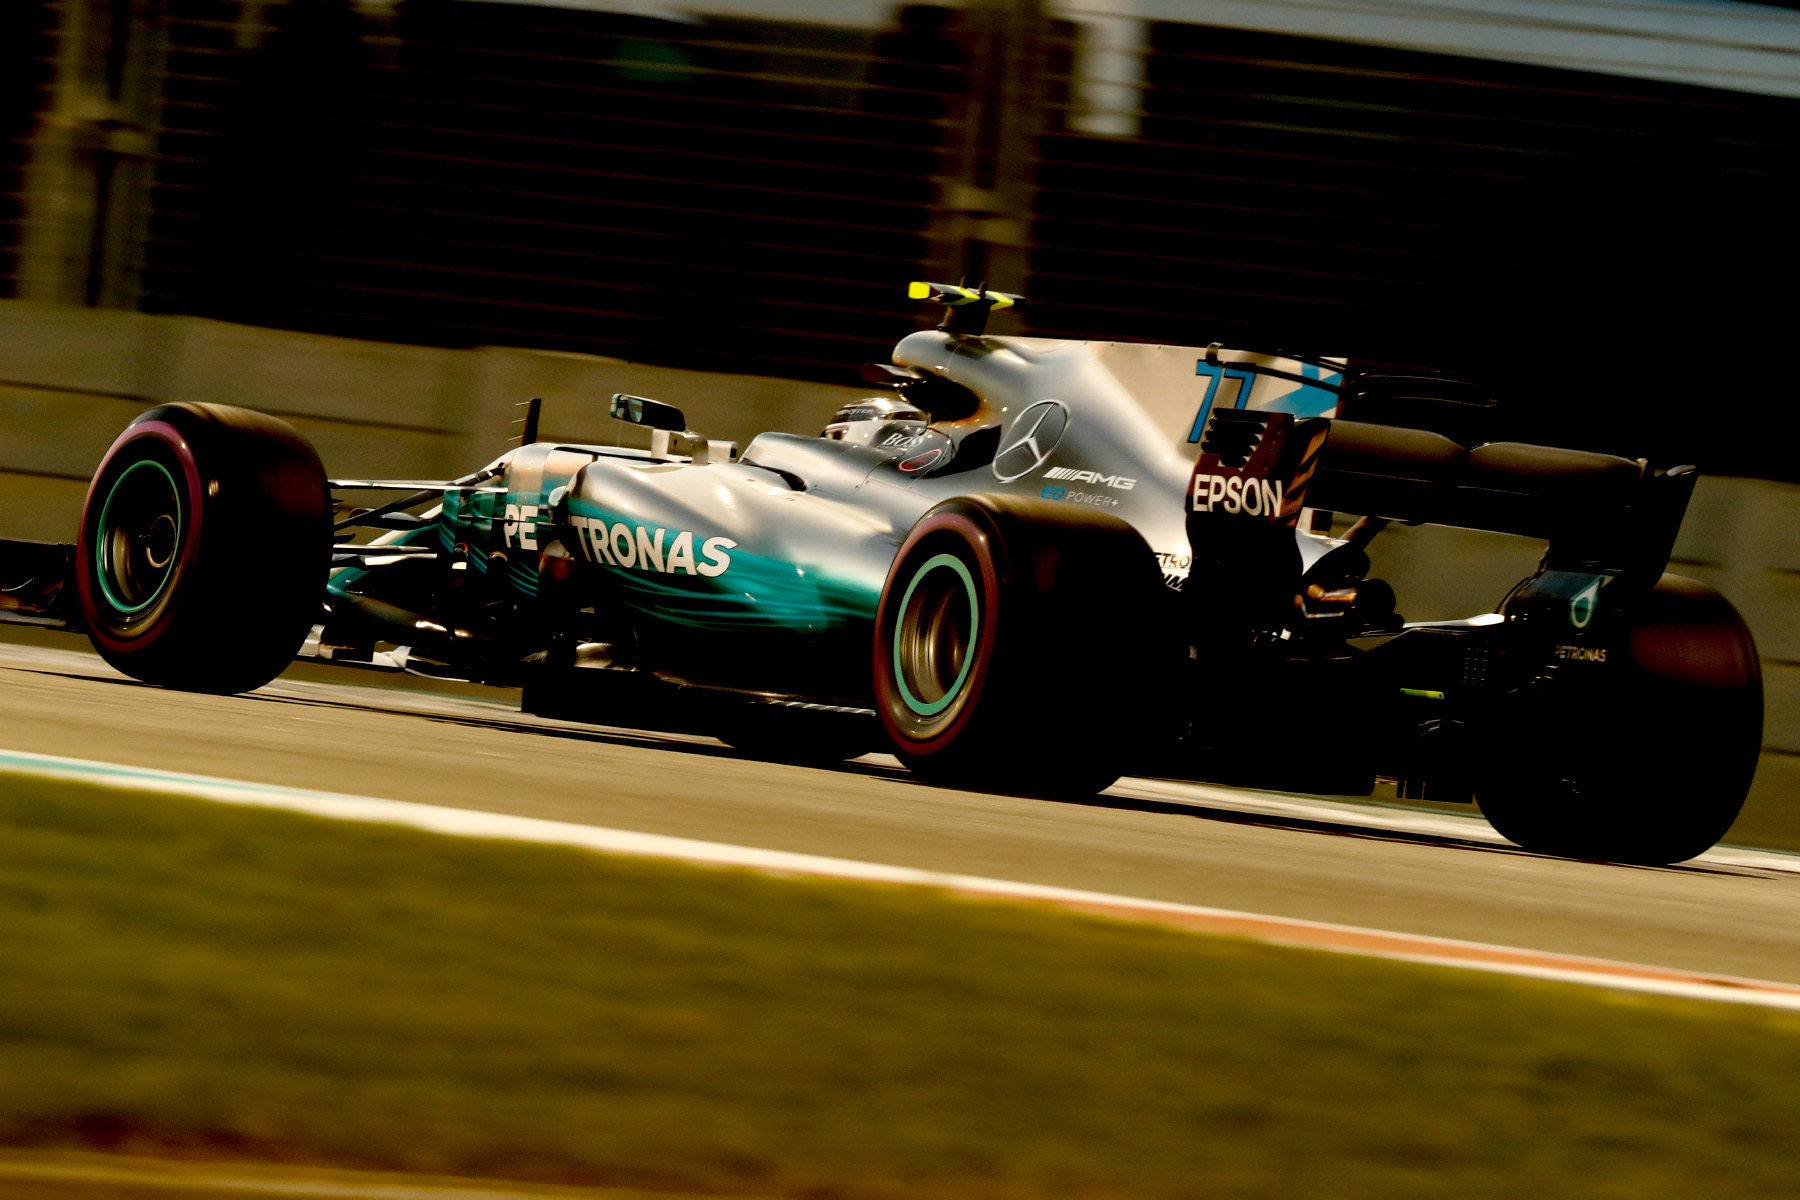 Valtteri Bottas on track at the 2017 Abu Dhabi Grand Prix.